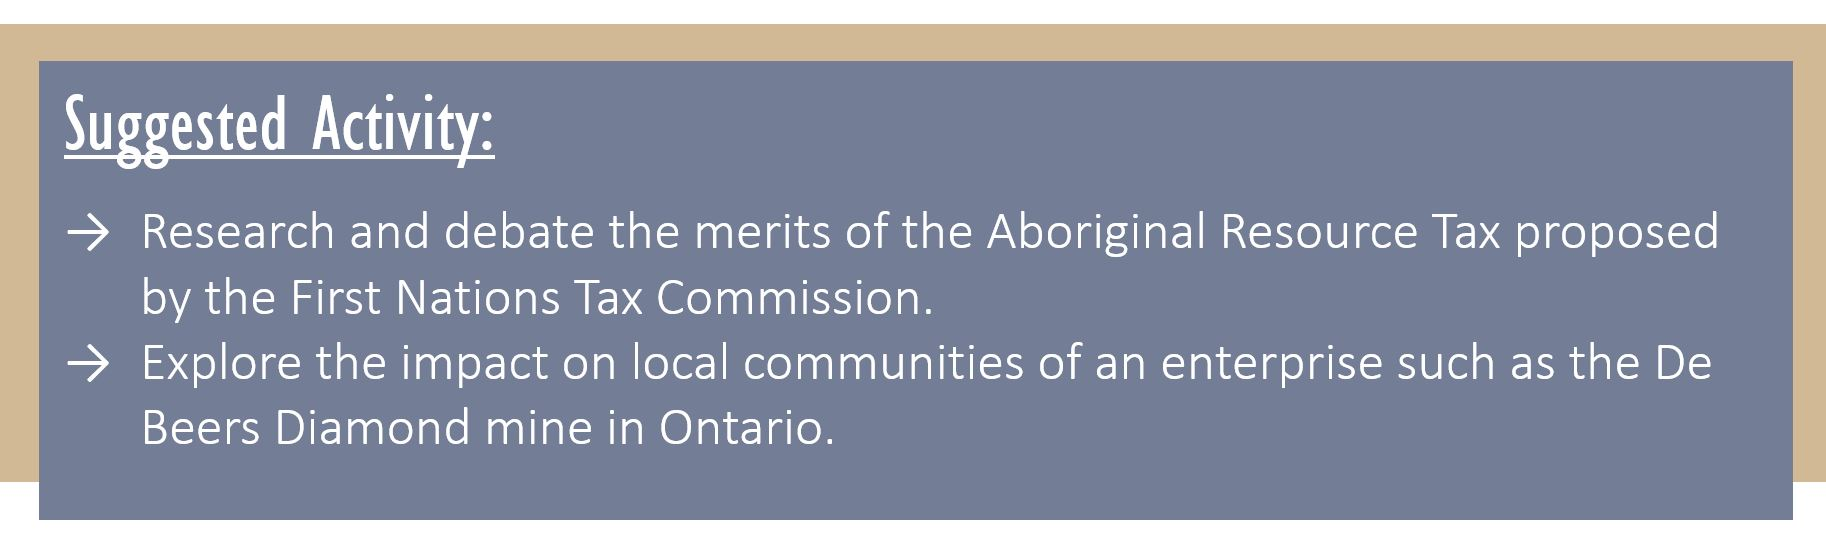 Suggested Activity: Research and debate the merits of the Aboriginal Resource Tax proposed by the First Nations Tax Commission. Explore the impact on local communities of an enterprise such as the De Beers Diamond mine in Ontario.